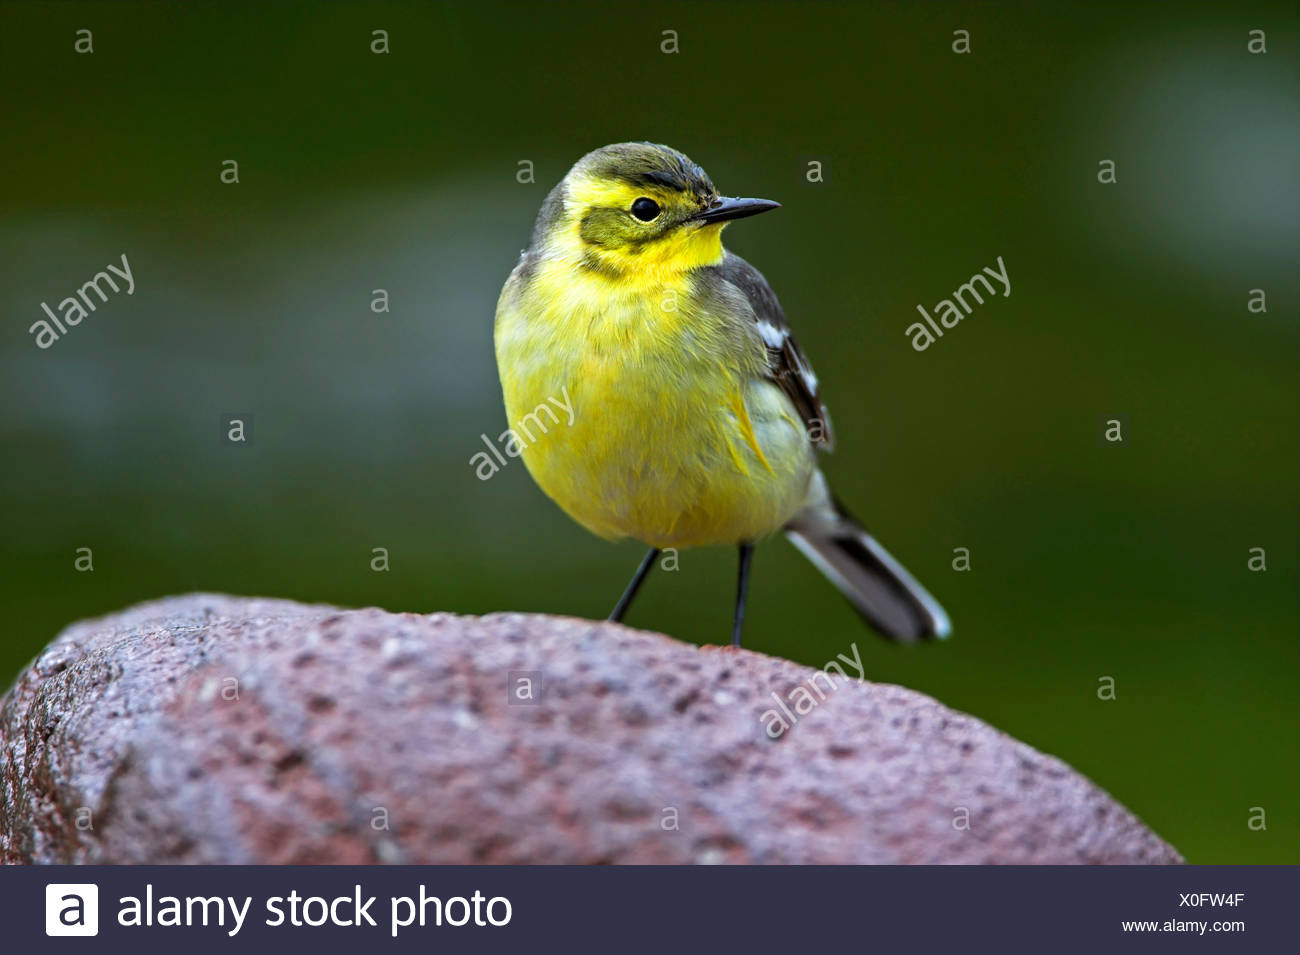 citrine wagtail (Motacilla citreola), sitting on a stone, Greece, Lesbos - Stock Image